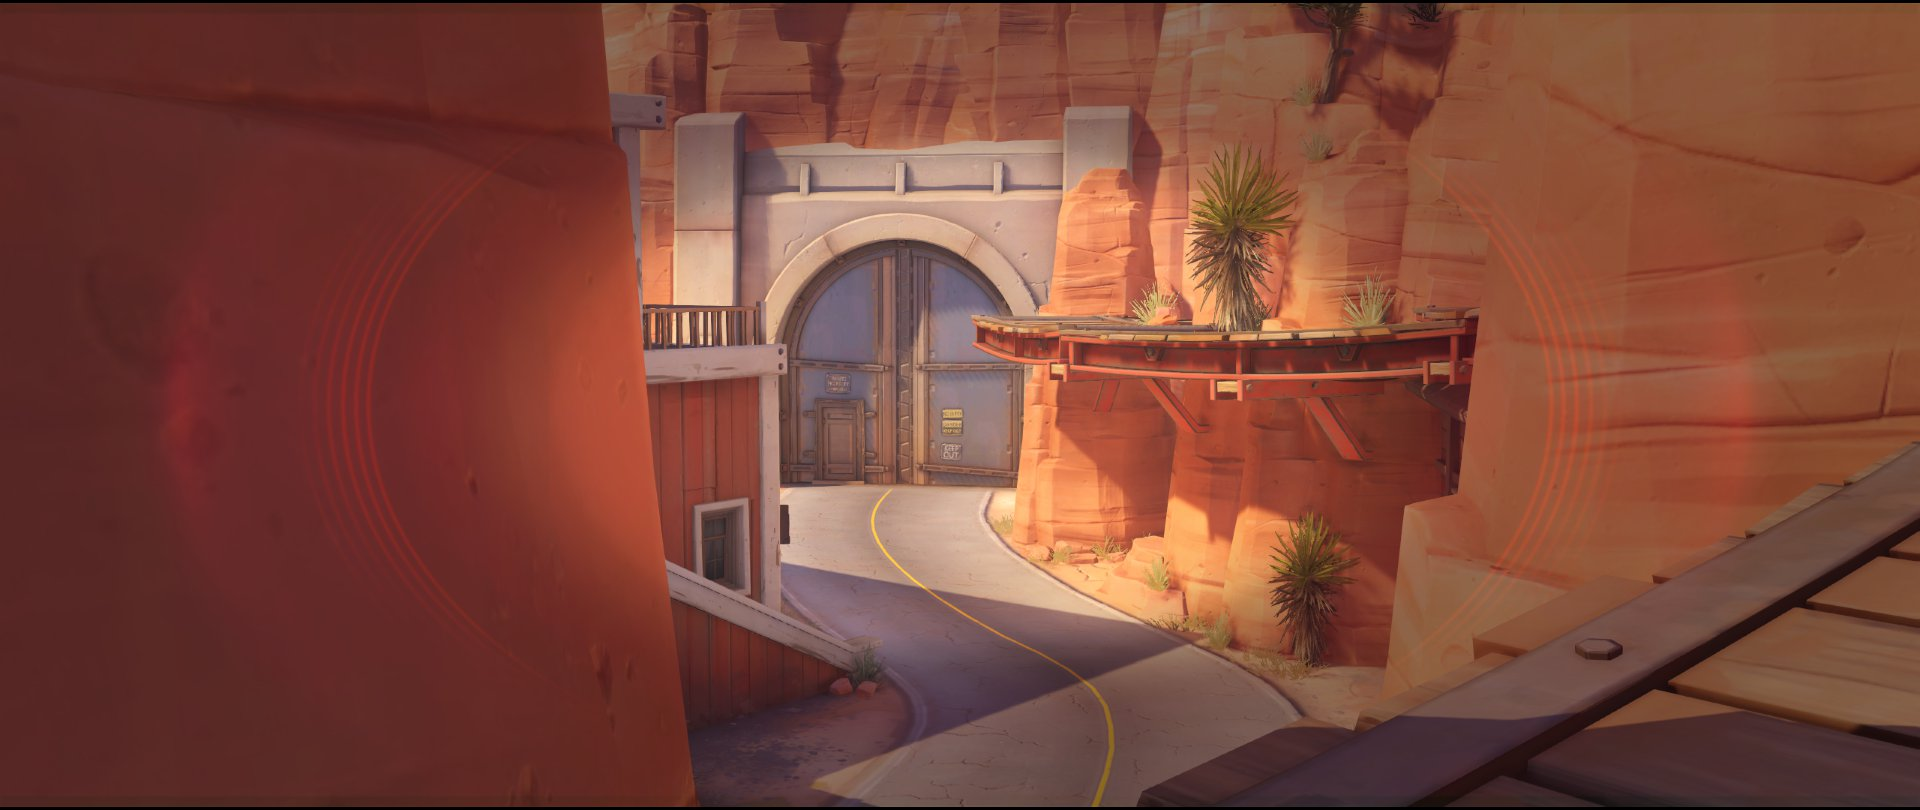 Catwalk view two attack sniping spot Widowmaker Route 66.jpg